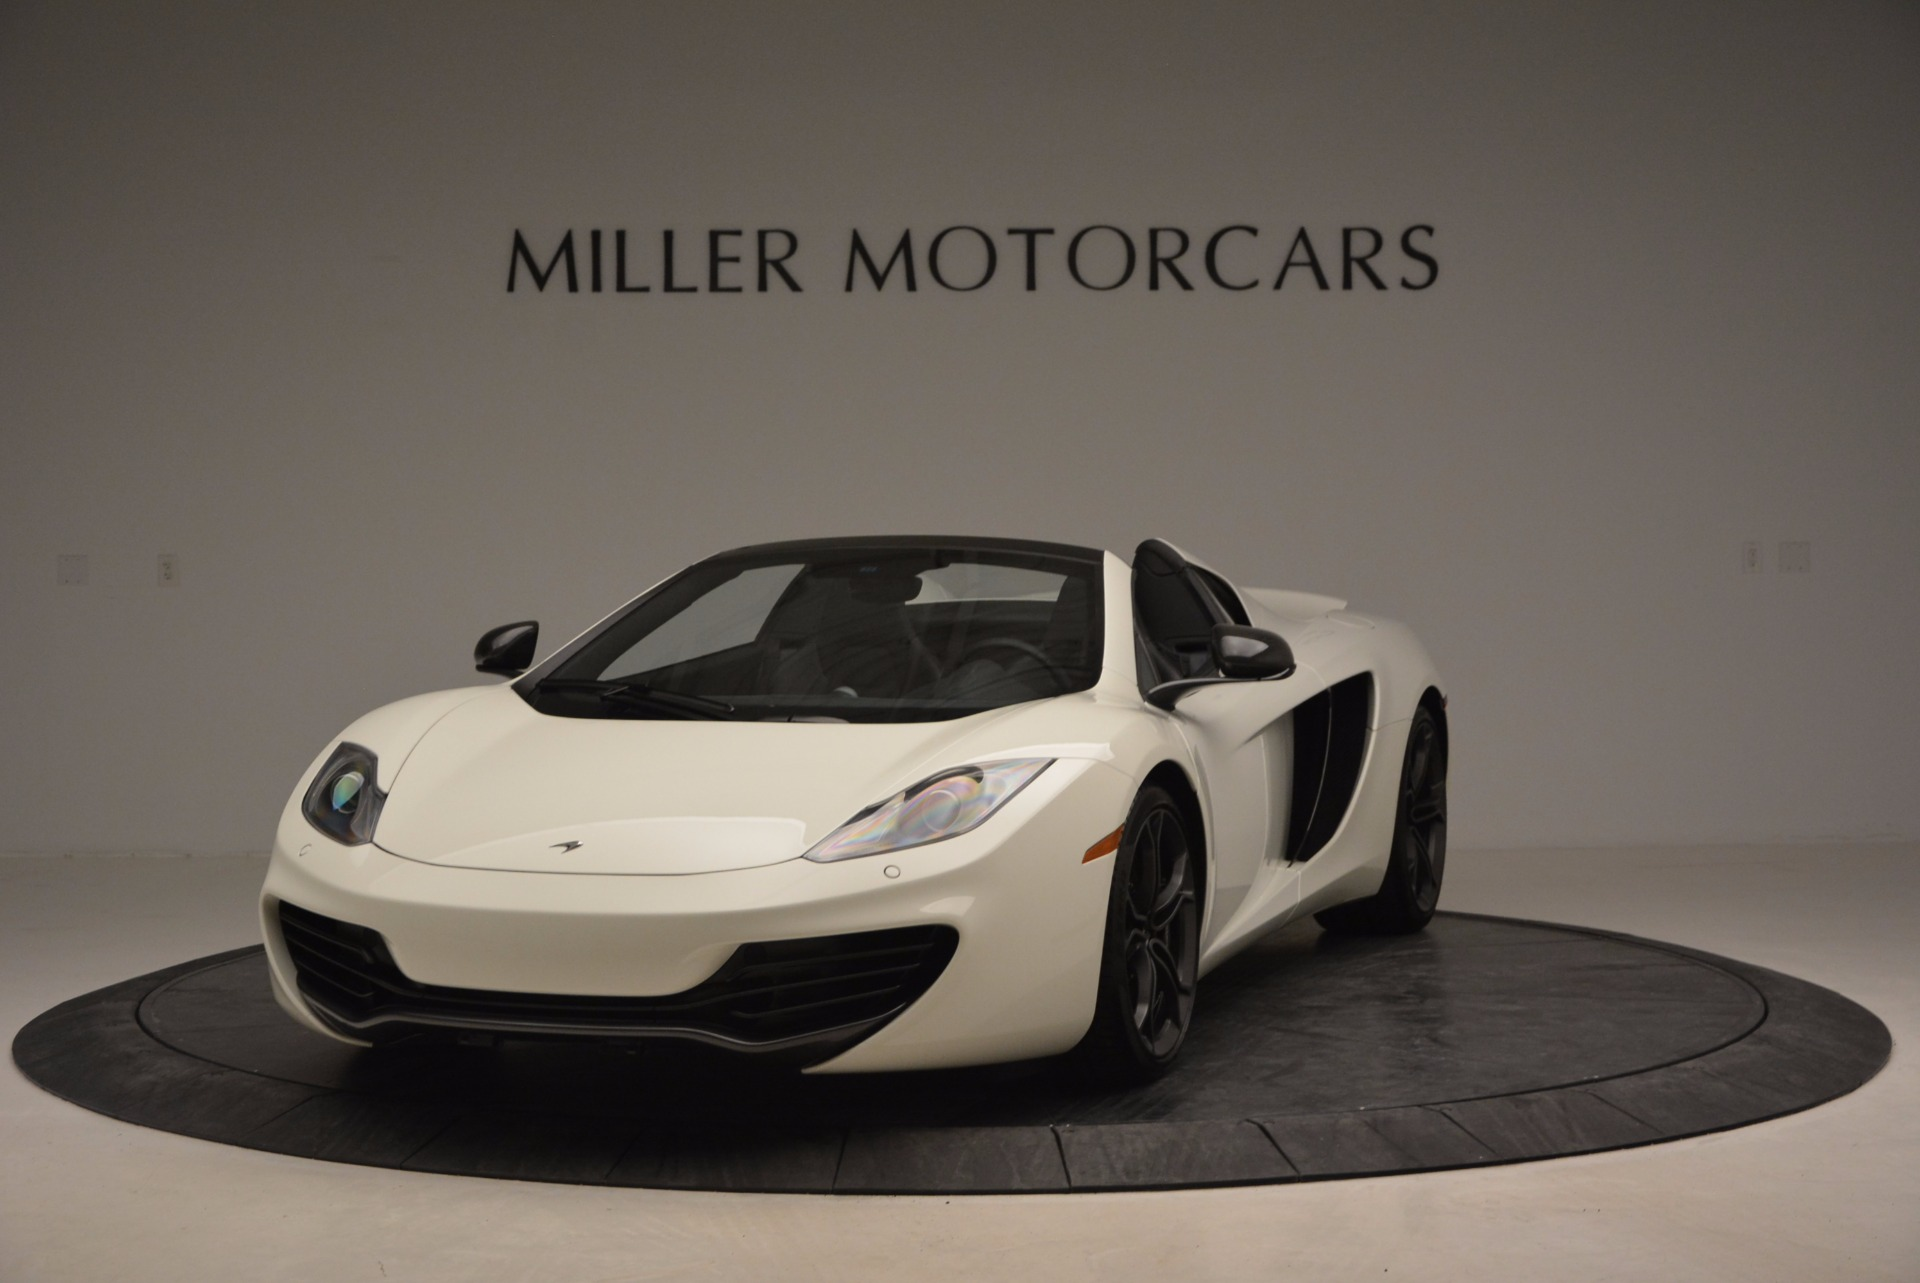 Used 2014 McLaren MP4-12C Spider for sale Sold at Rolls-Royce Motor Cars Greenwich in Greenwich CT 06830 1